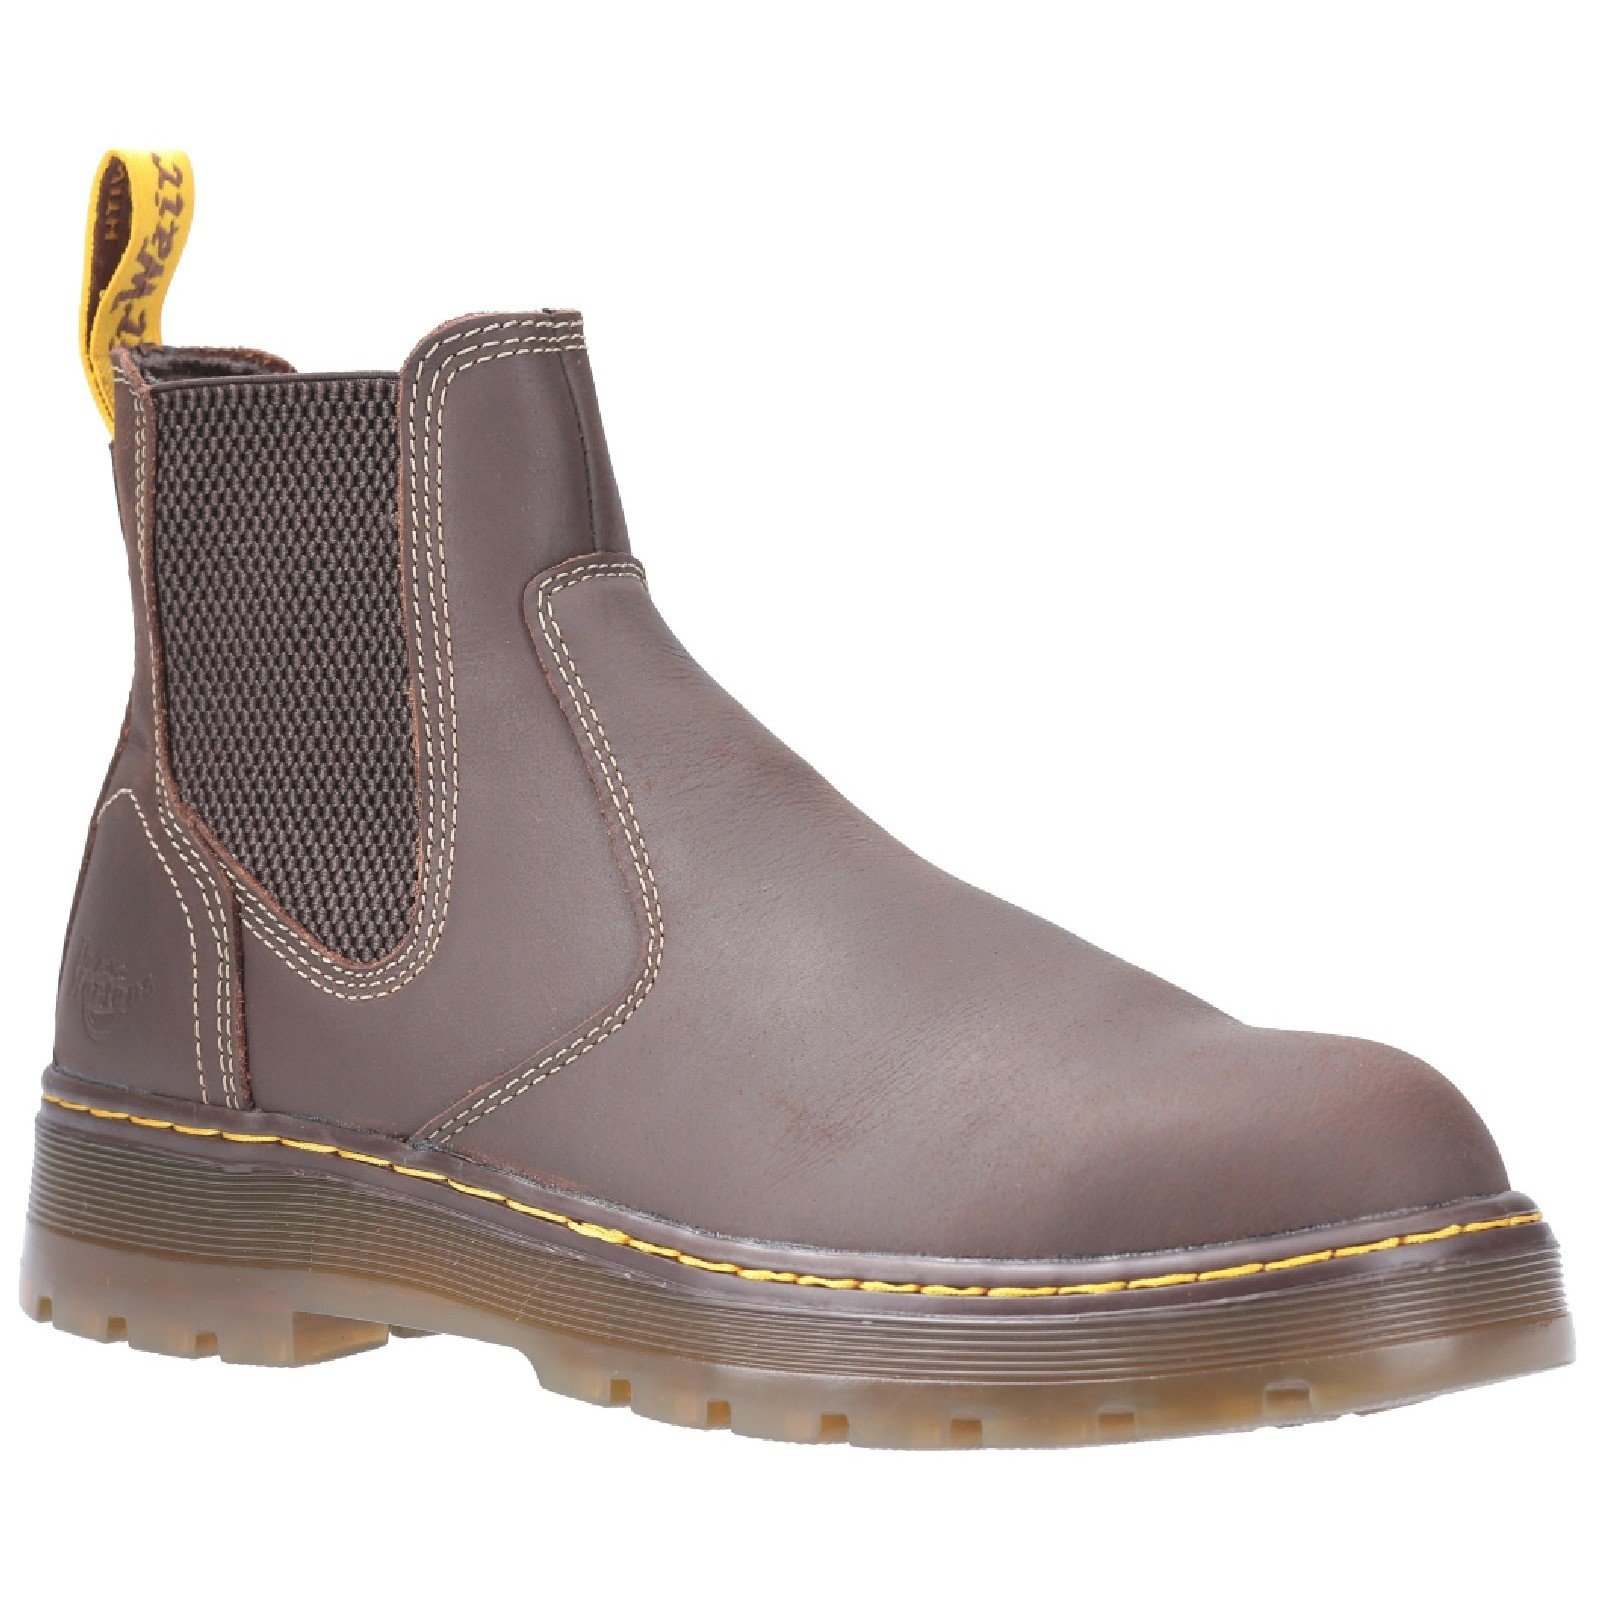 Dr Martens Unisex Eaves SB Elasticated Safety Boot Brown 29519 - Brown 5